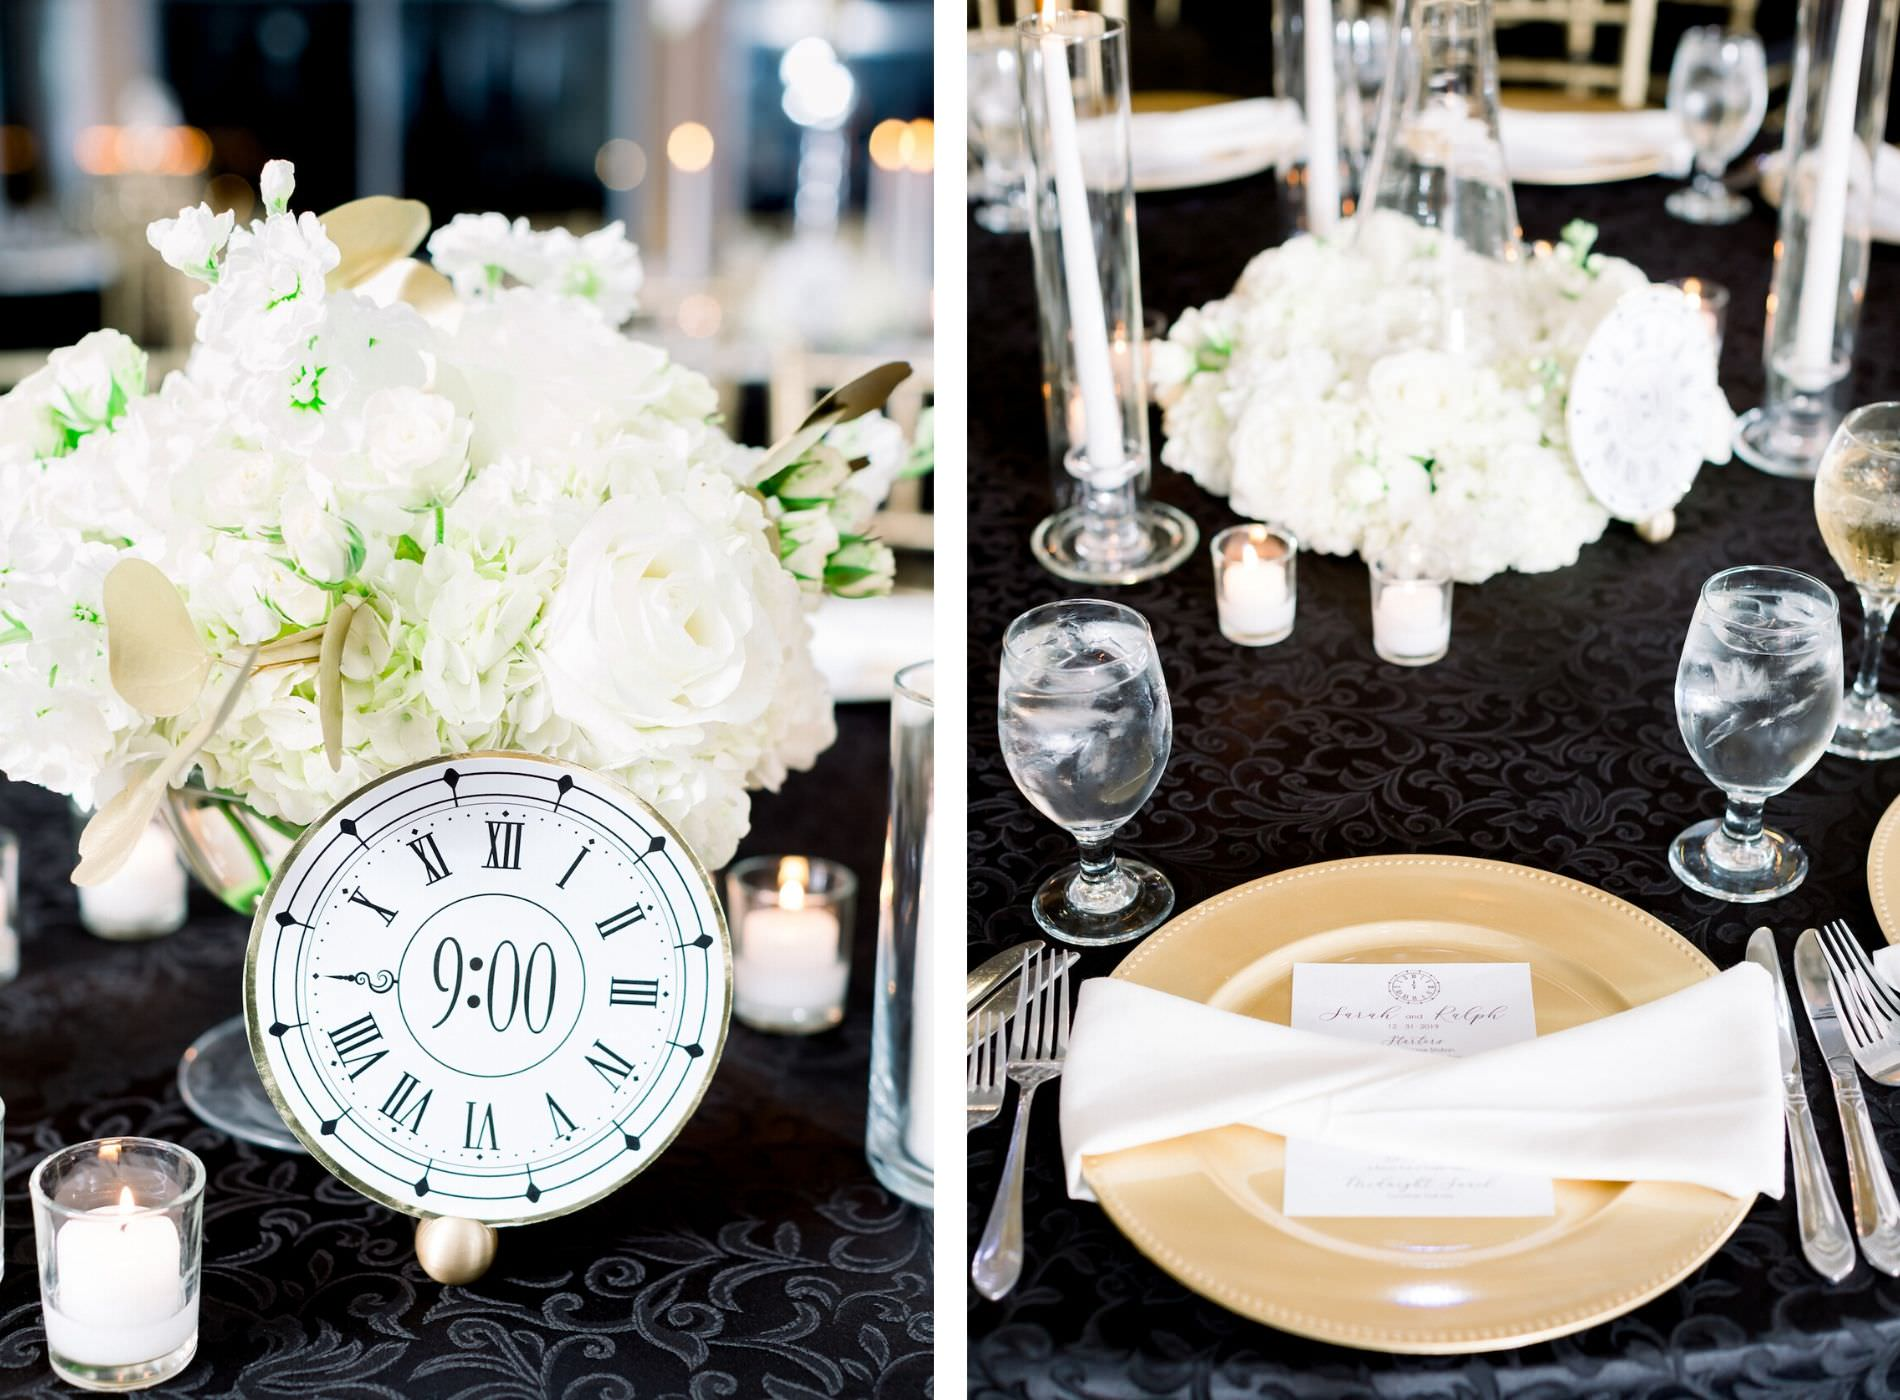 Formal New Year's Eve Wedding Reception Decor, Black and White Clock, White Roses and Hydrangeas Floral Centerpiece, Gold Charger with White Linen, Black Tablecloth | Wedding Photographer Shauna and Jordon Photography | Tampa Bay Wedding Planner UNIQUE Weddings + Events | Wedding Rentals A Chair Affair